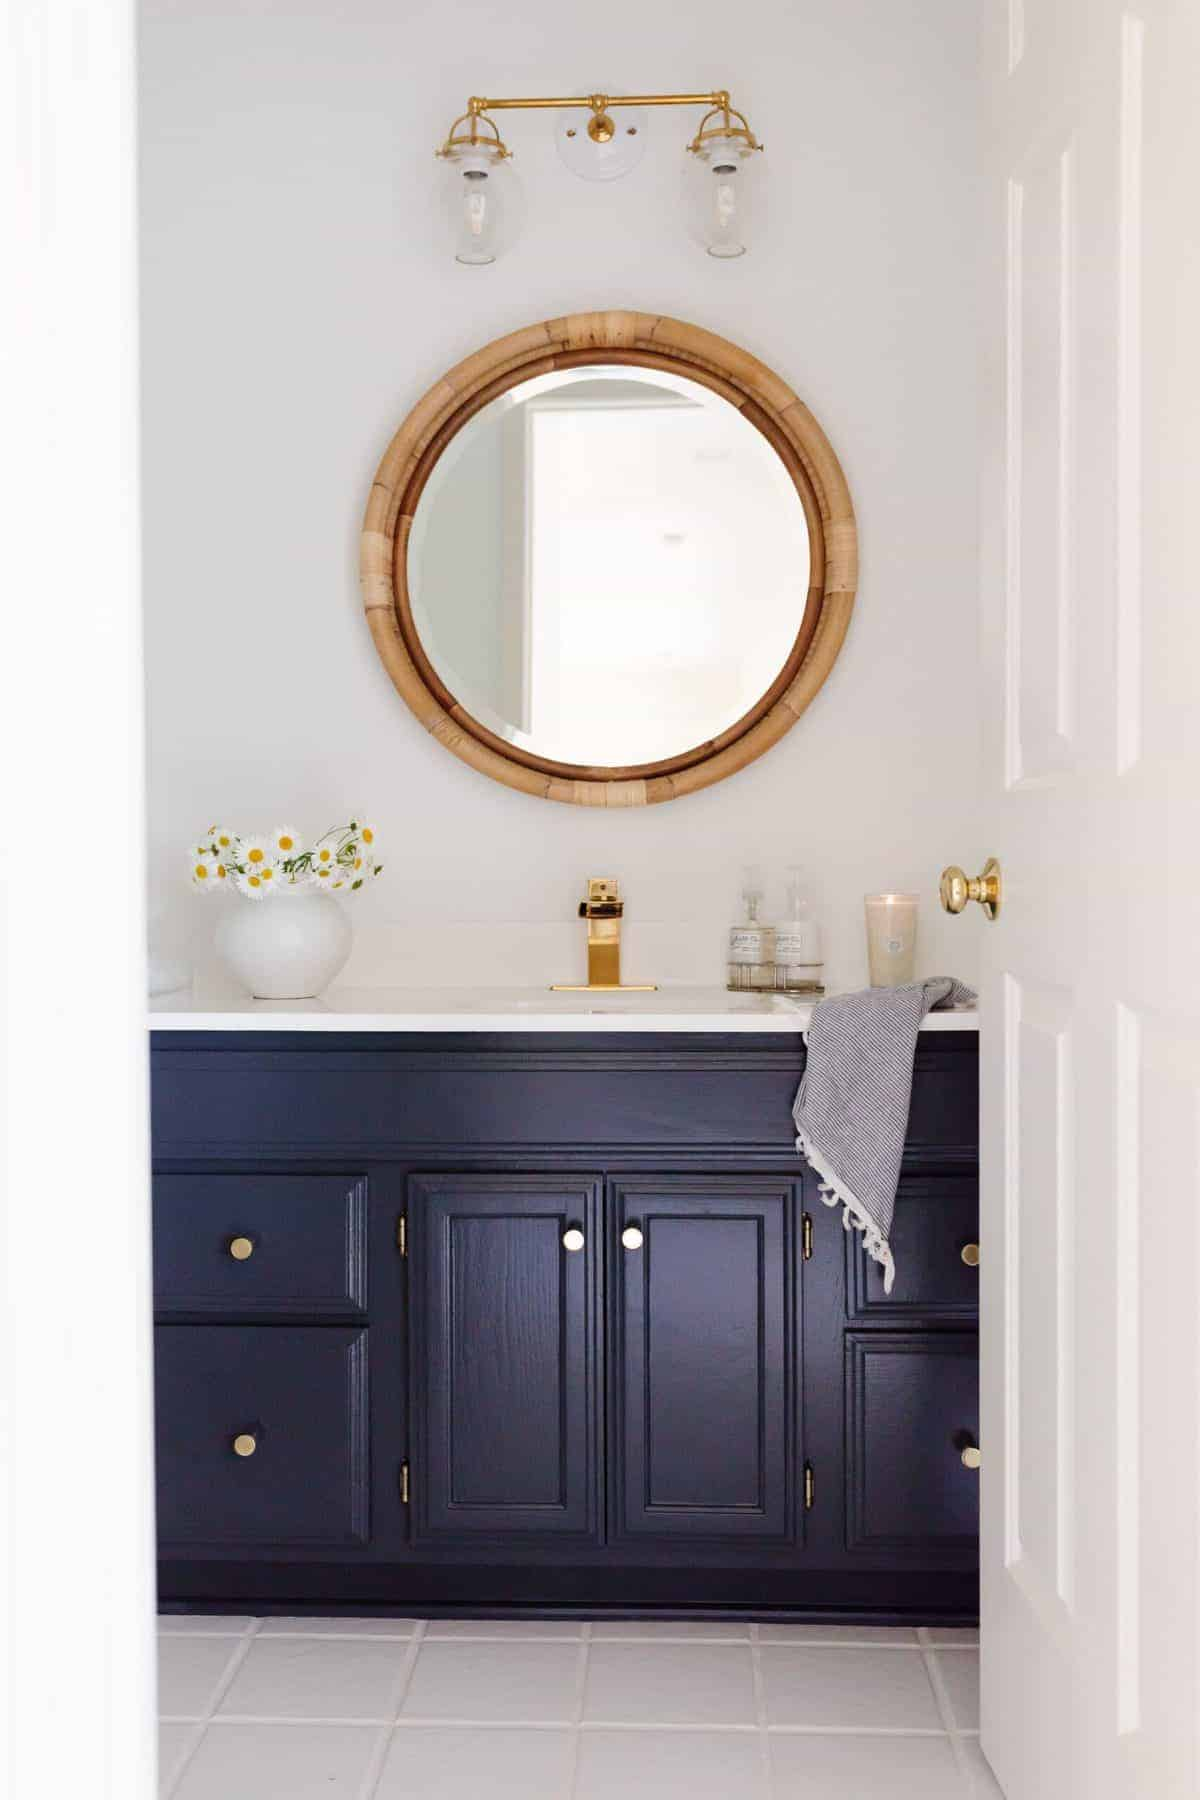 A white bathroom with a round wicker mirror and a dark blue dressing table.